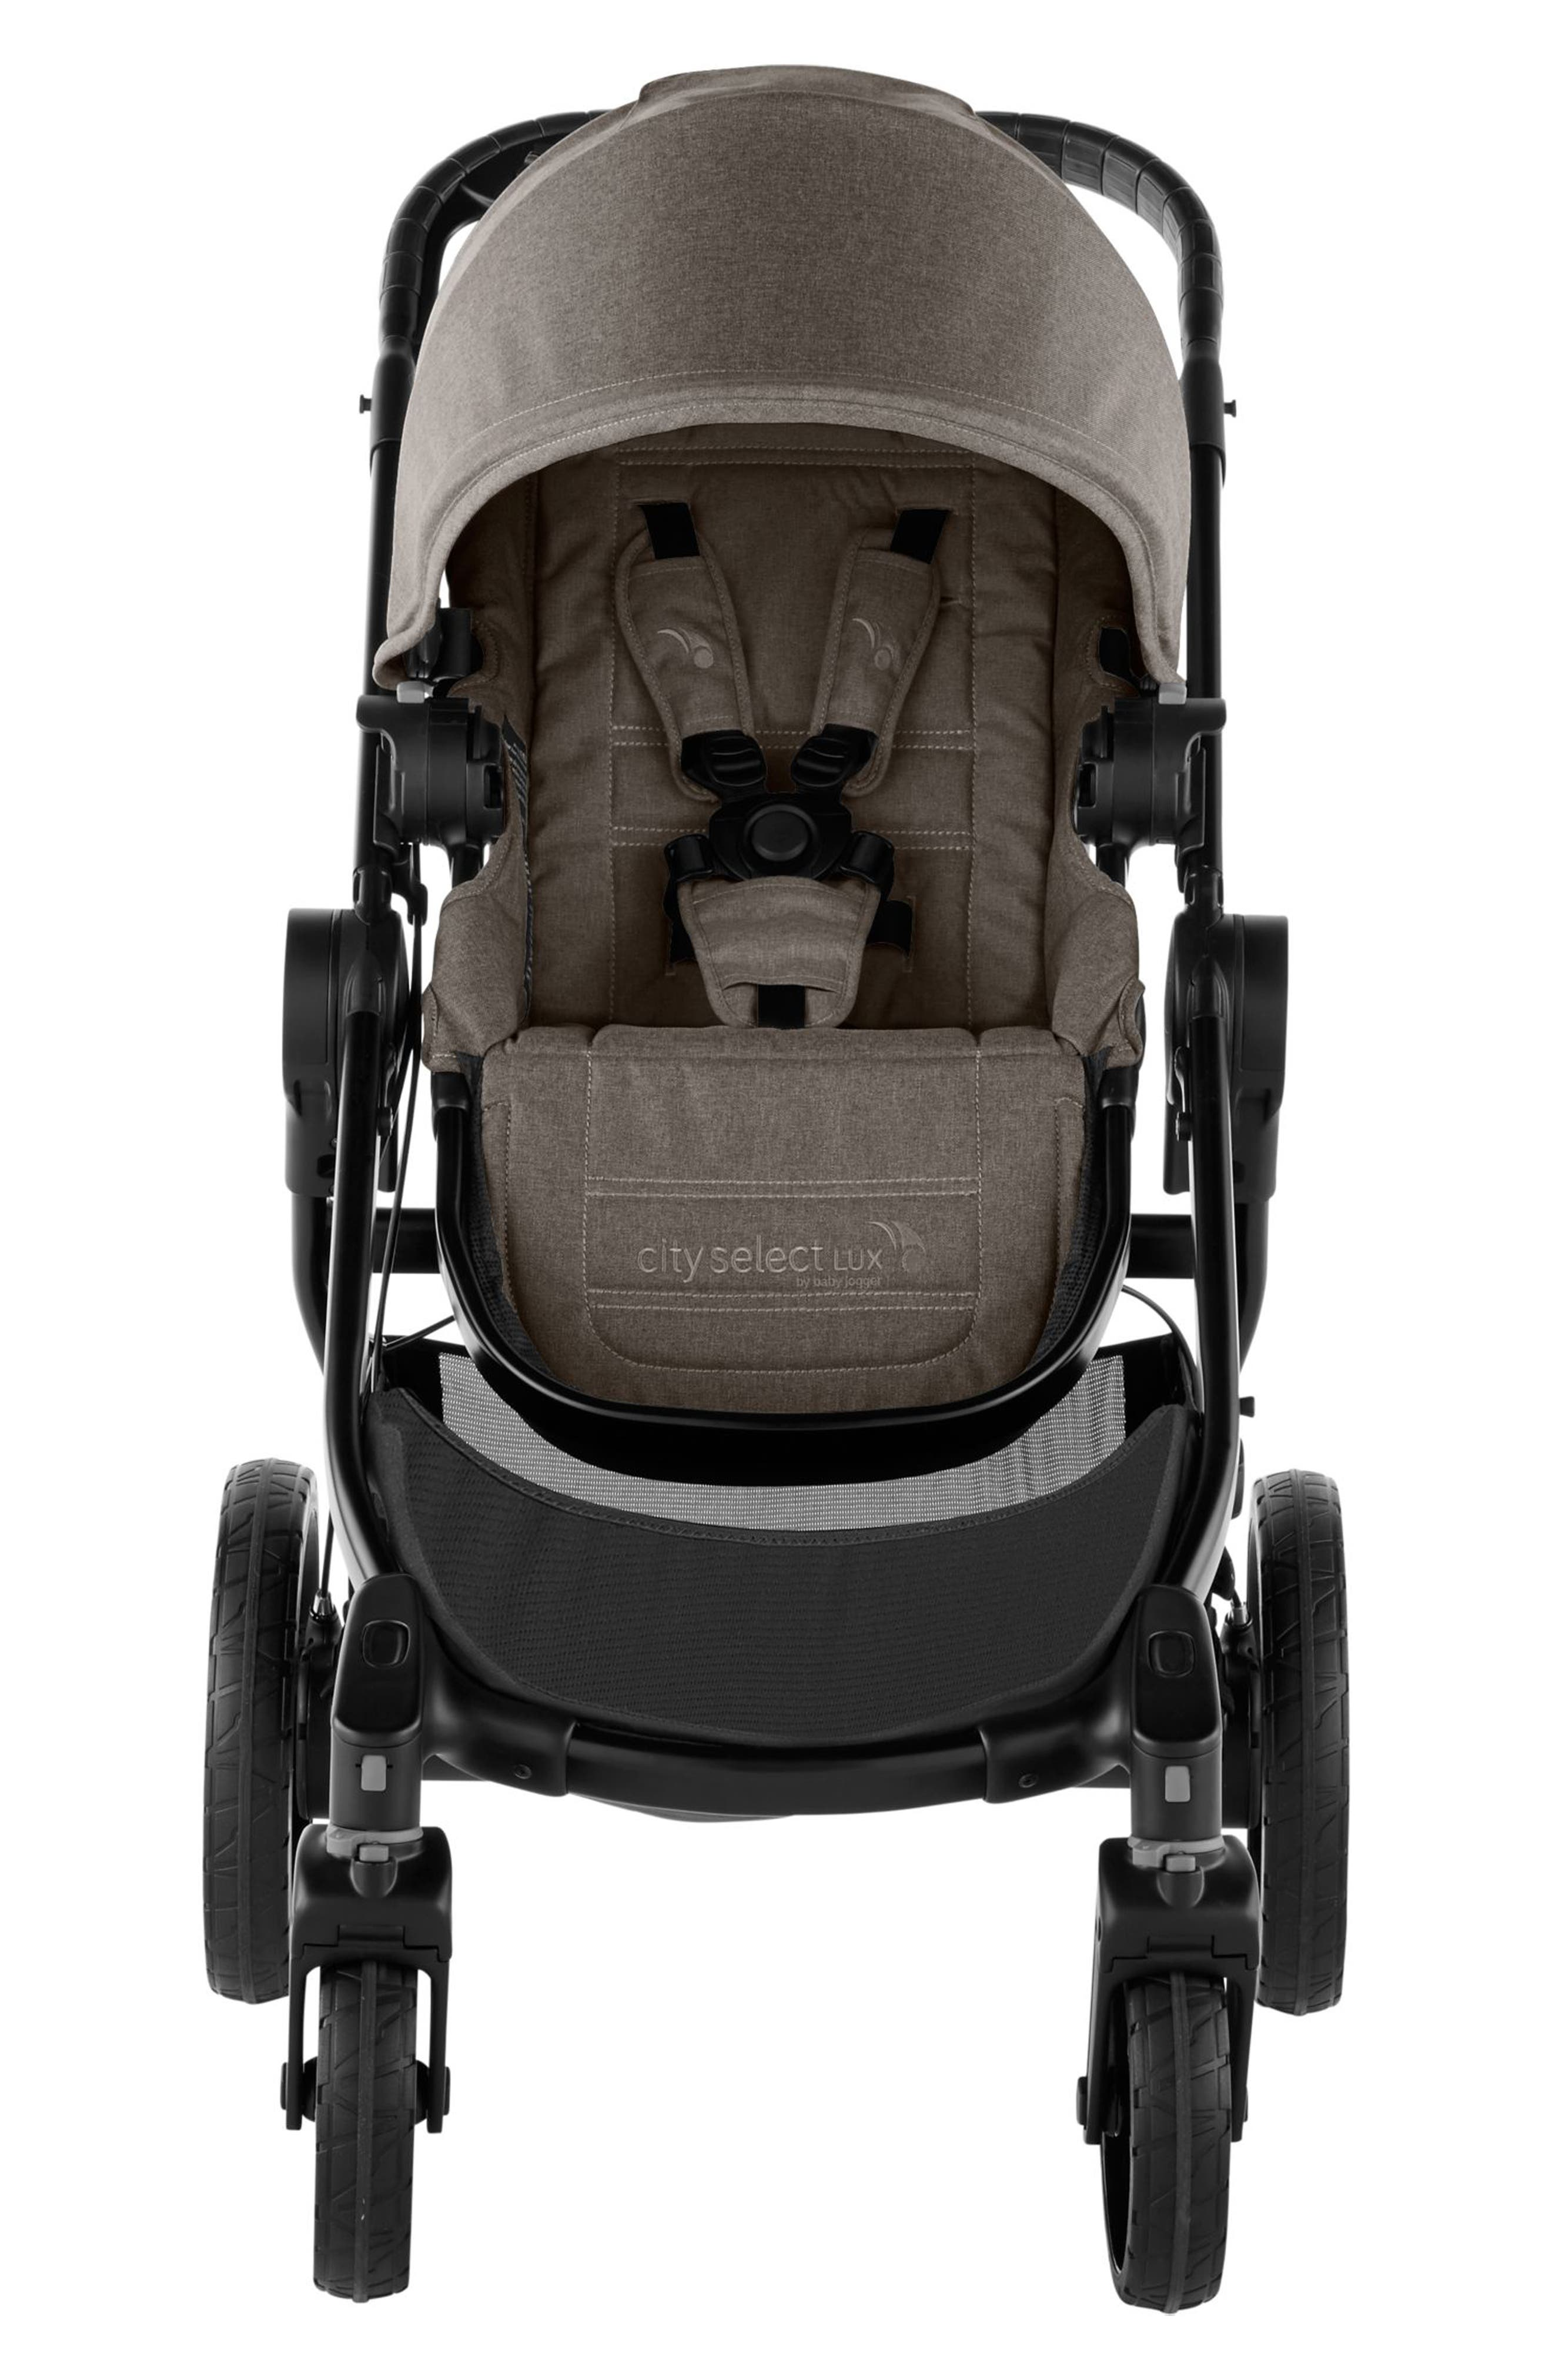 Alternate Image 2  - Baby Jogger City Select LUX 2017 Stroller